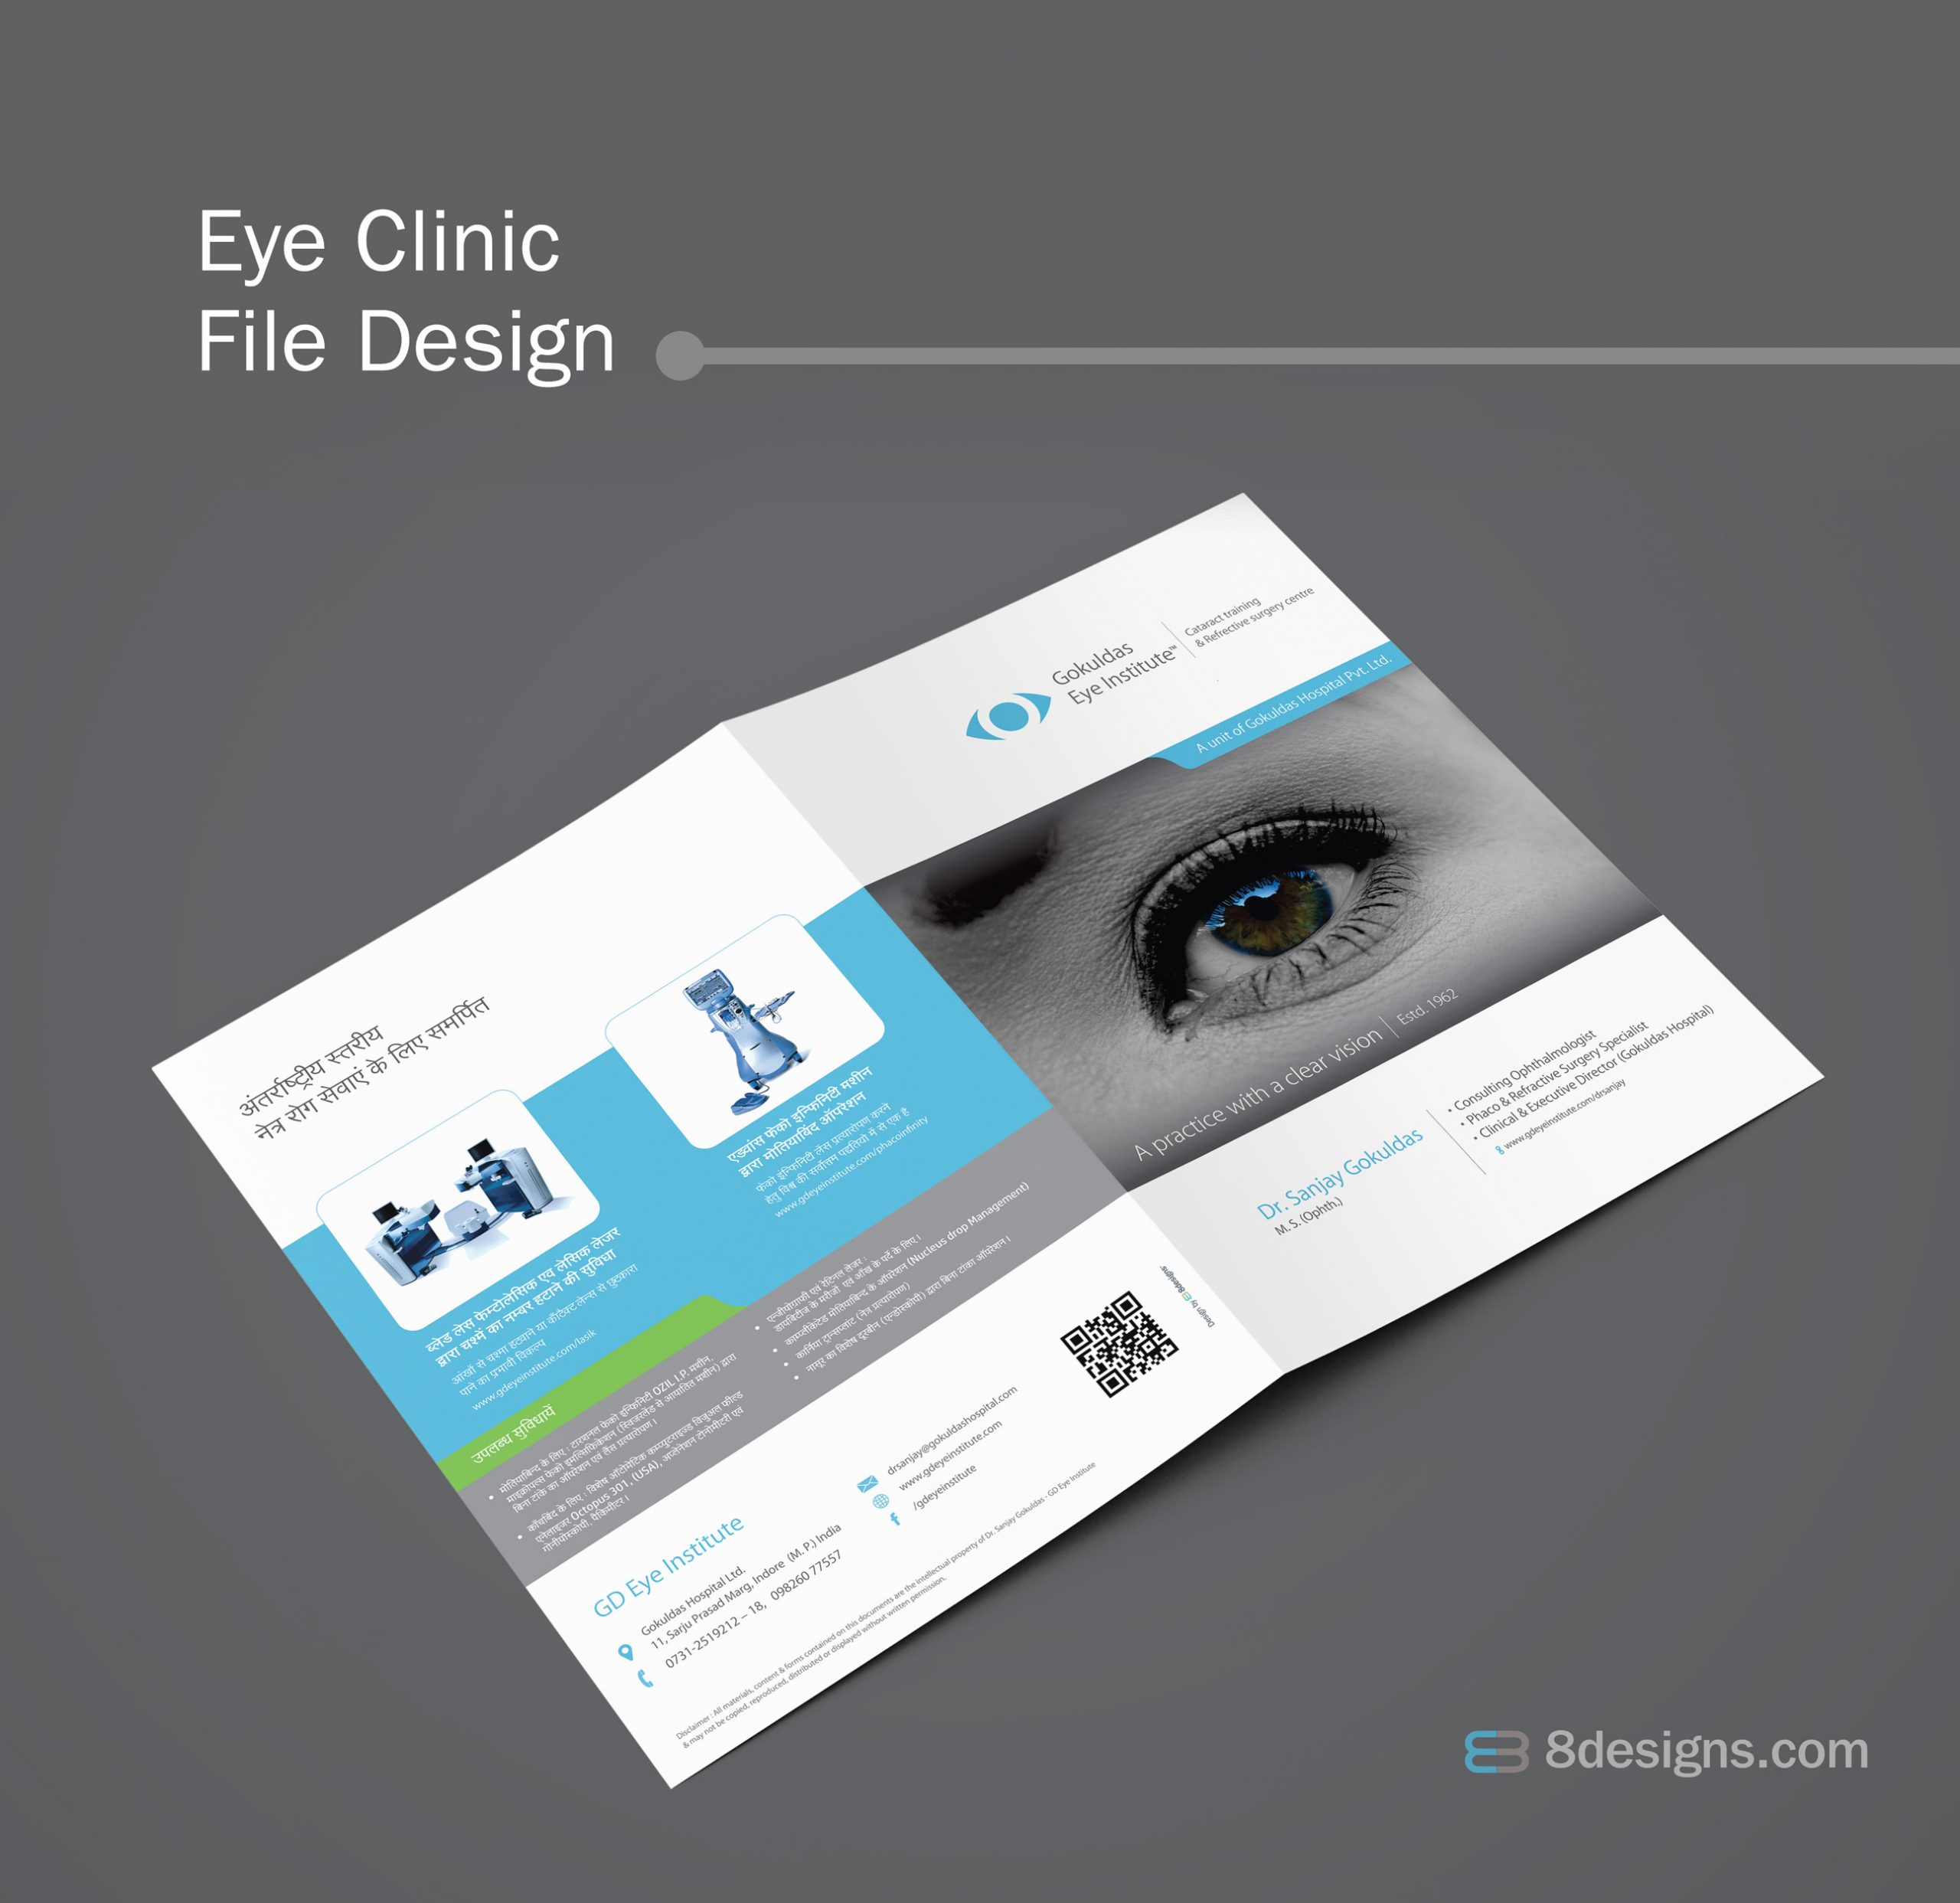 Clinic File Design, Eye Clinic File Design